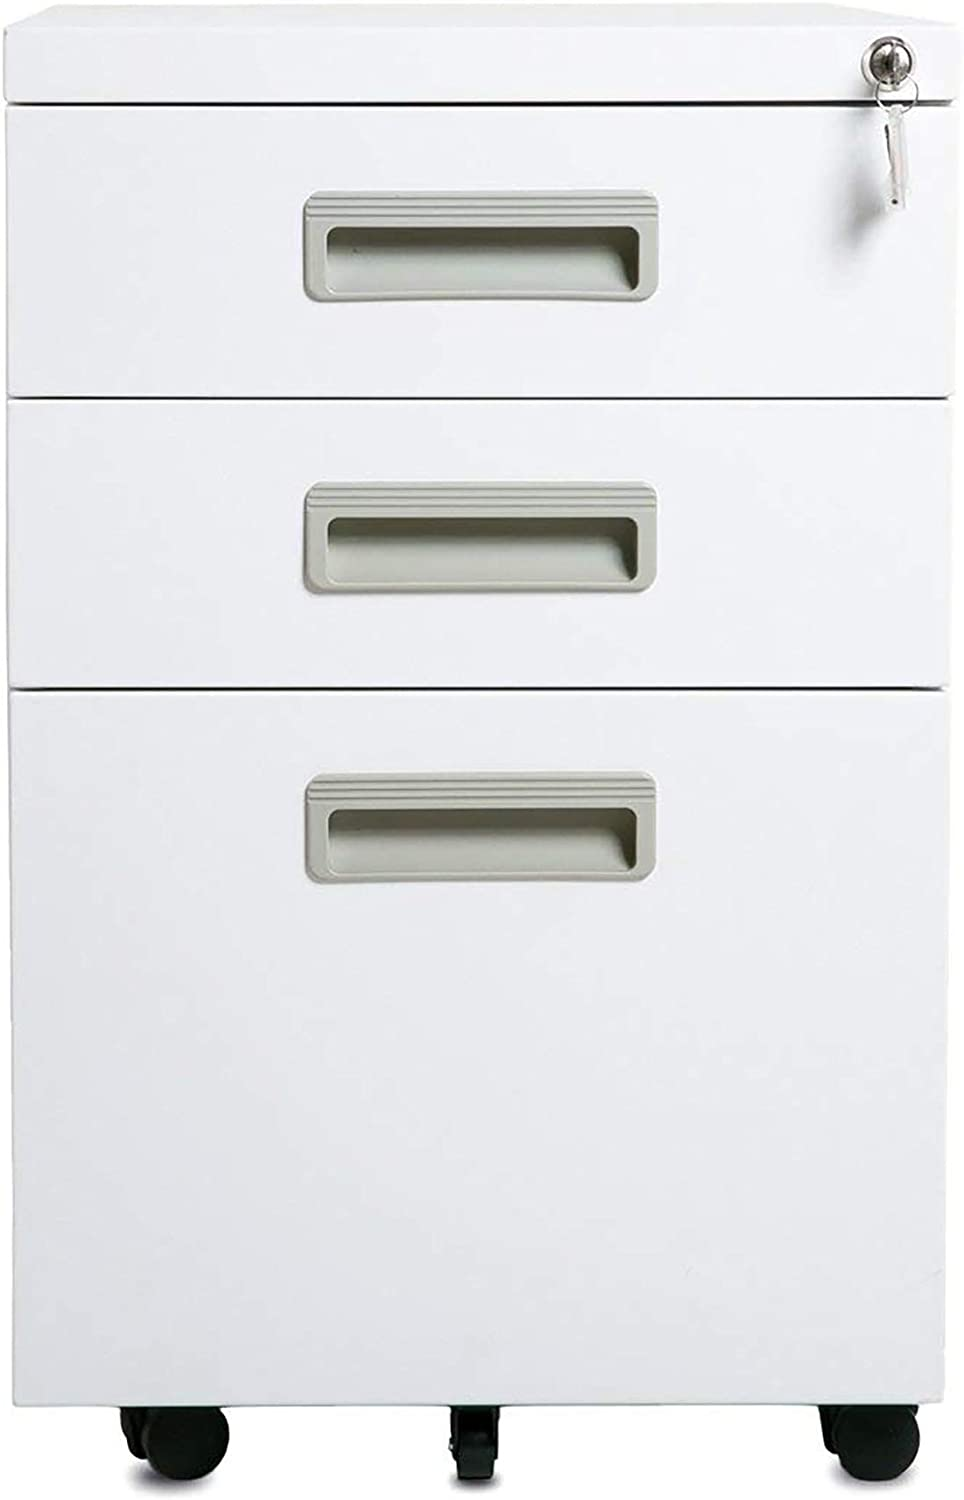 Office 3-Drawer Mobile Metal File Cabinet with Keys White with Plastic Handle 15.5 x 20.5 x 24.5